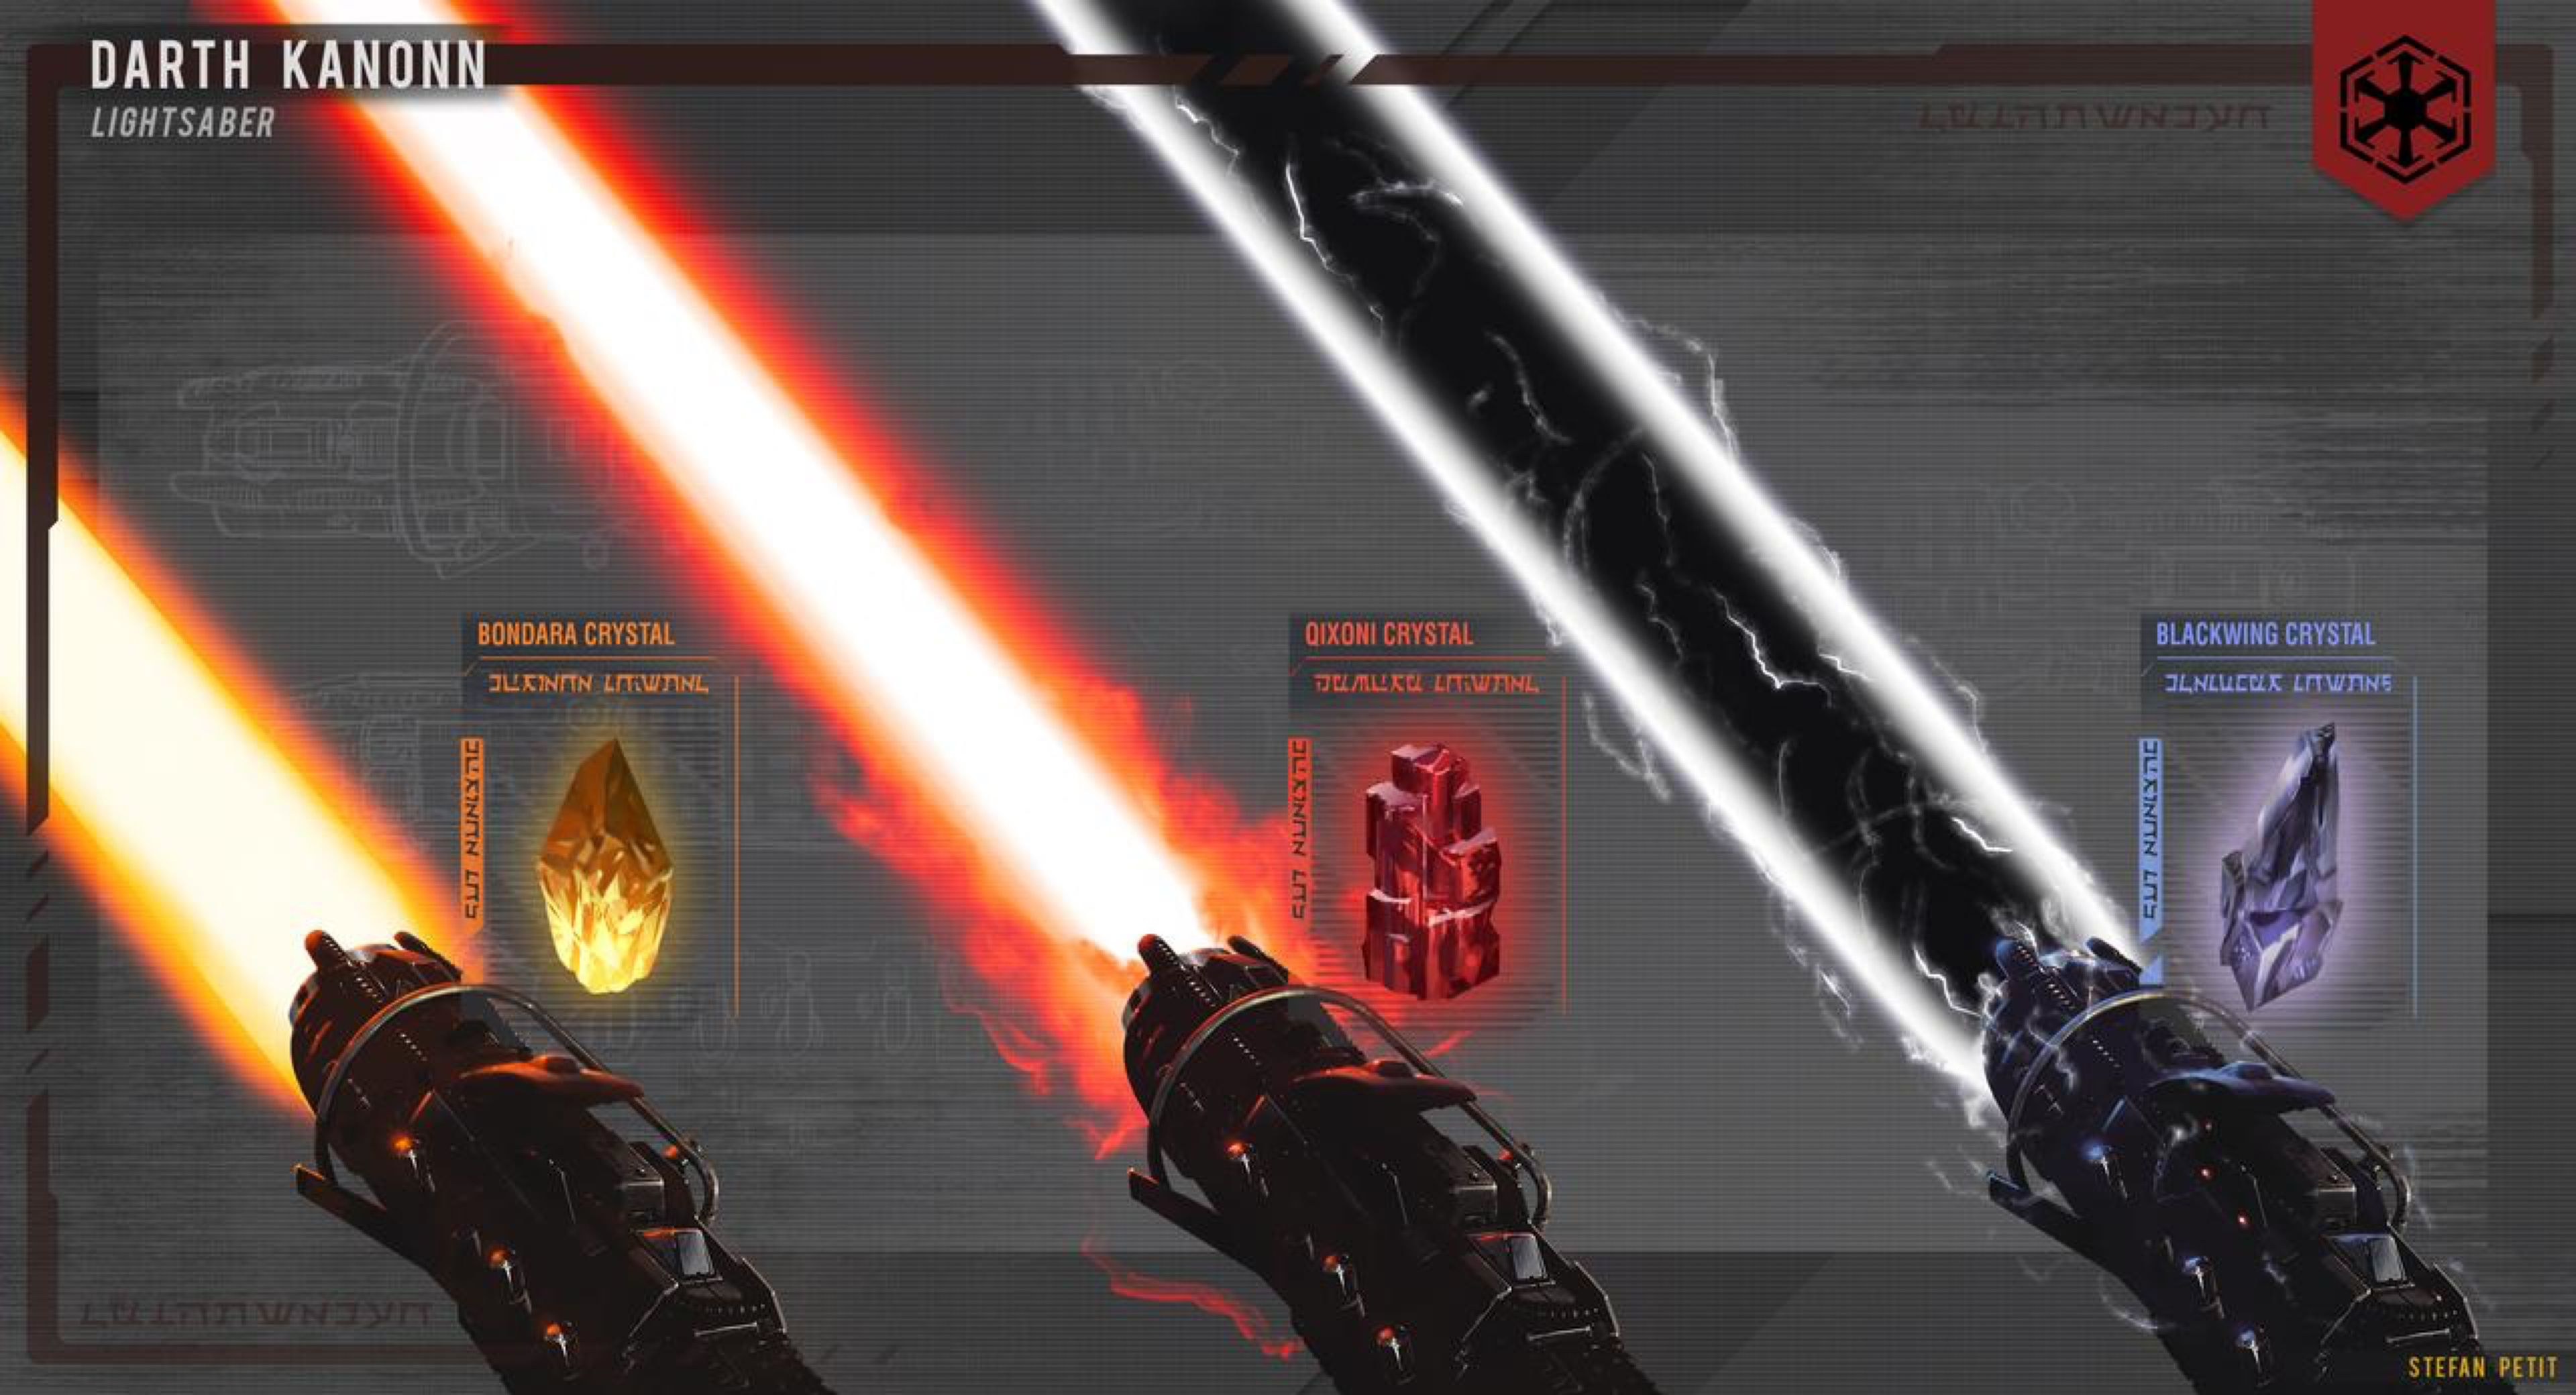 Sith Lightsaber Blade Variety By Spetit05 On Deviantart With